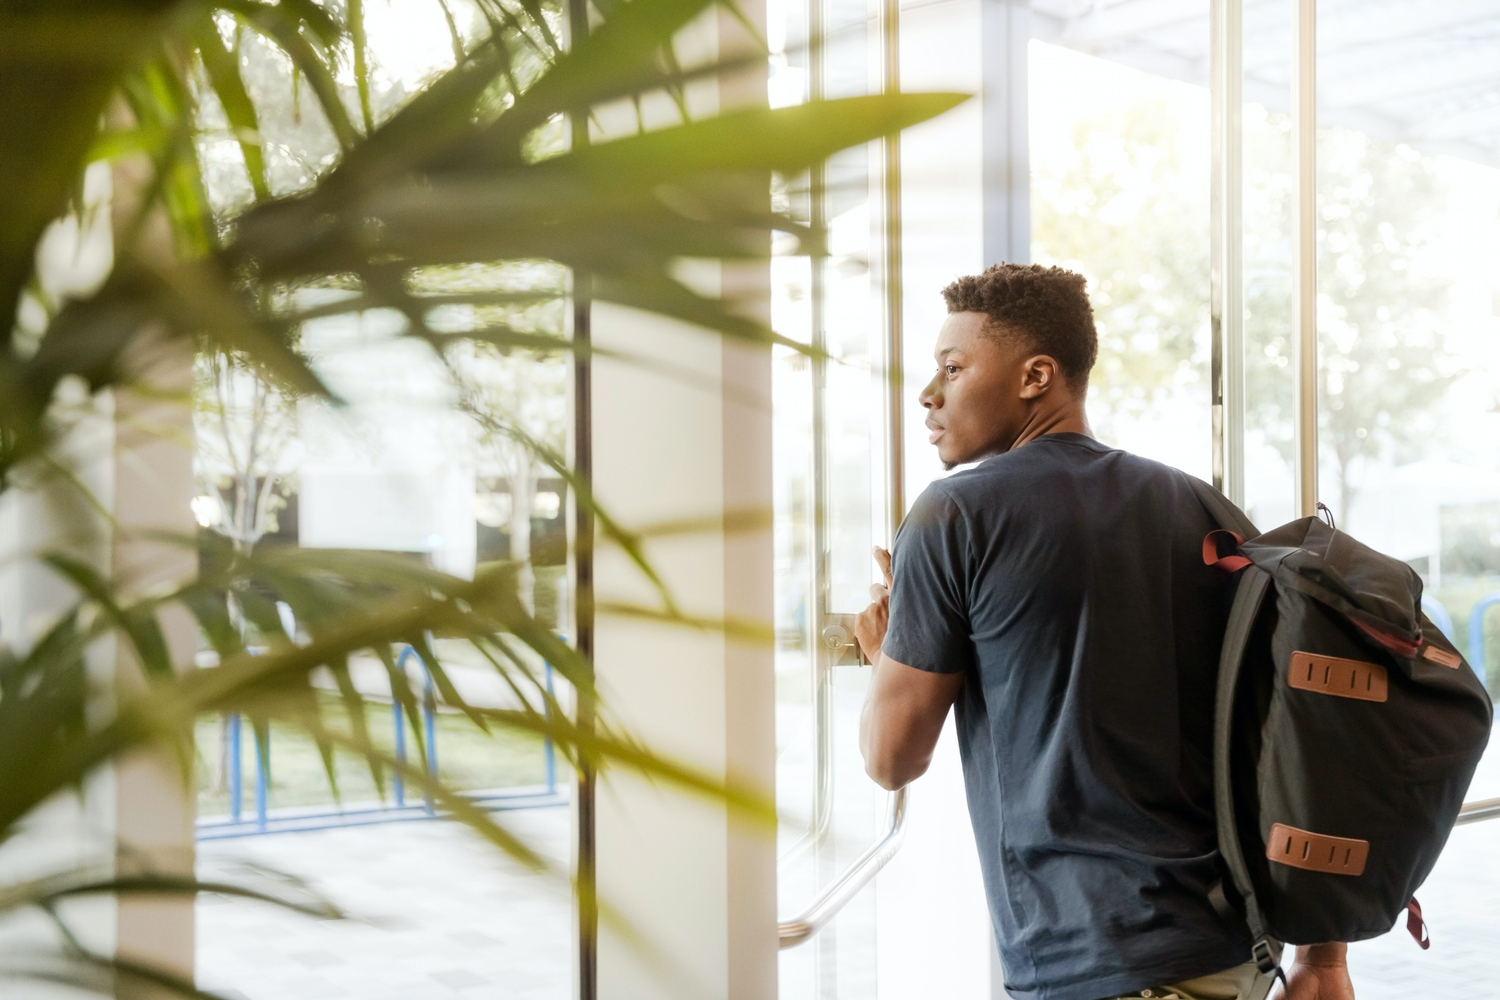 Man looking outside window carrying black and brown backpack